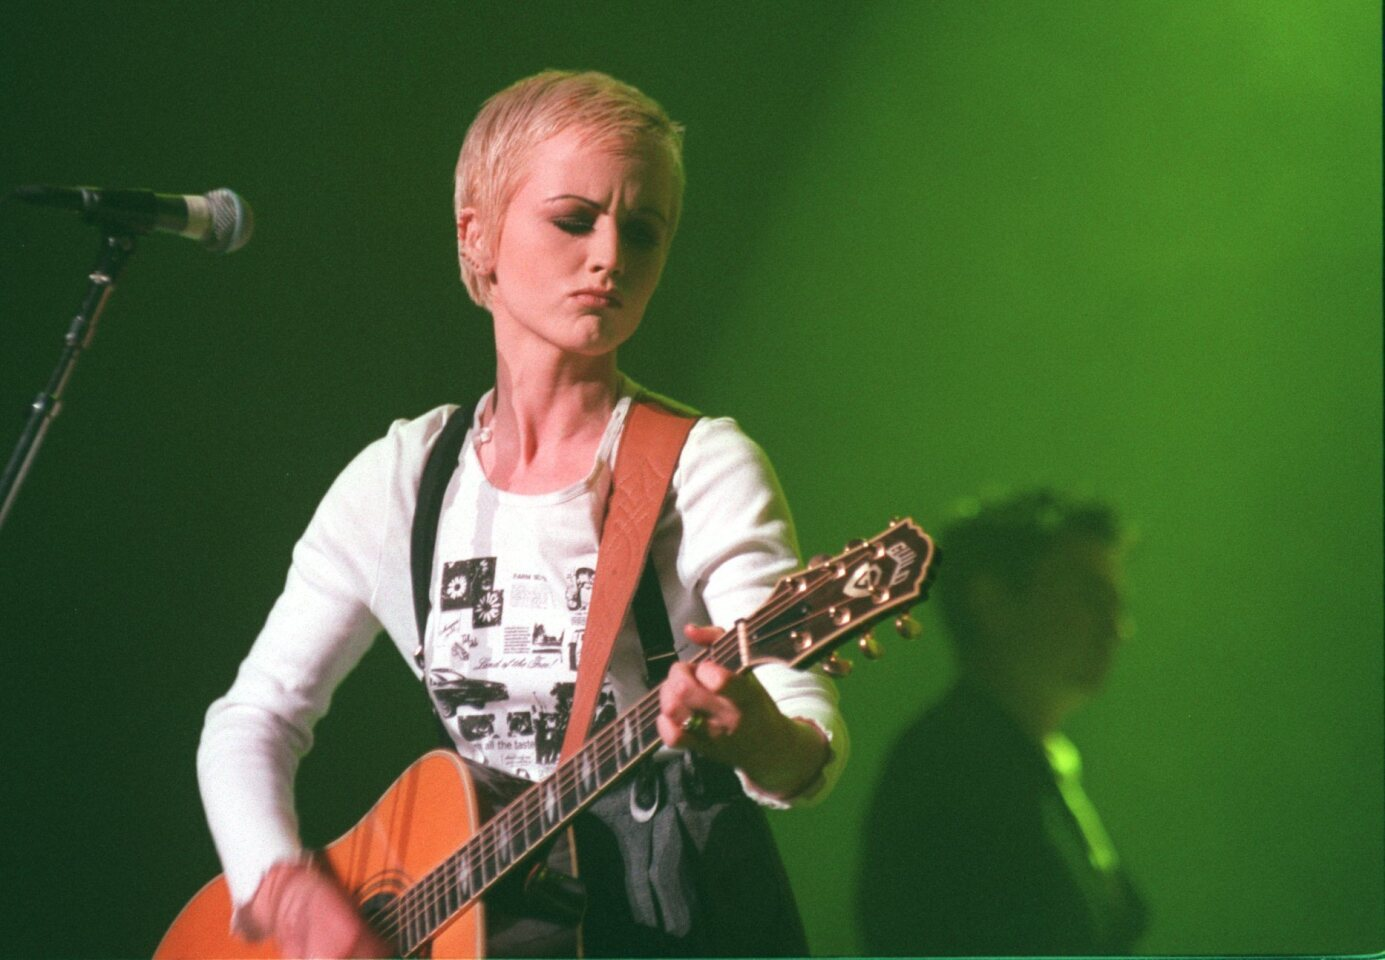 Dolores O'Riordan, the lead singer for the Cranberries, performs at the Wiltern on Nov. 29, 1994.